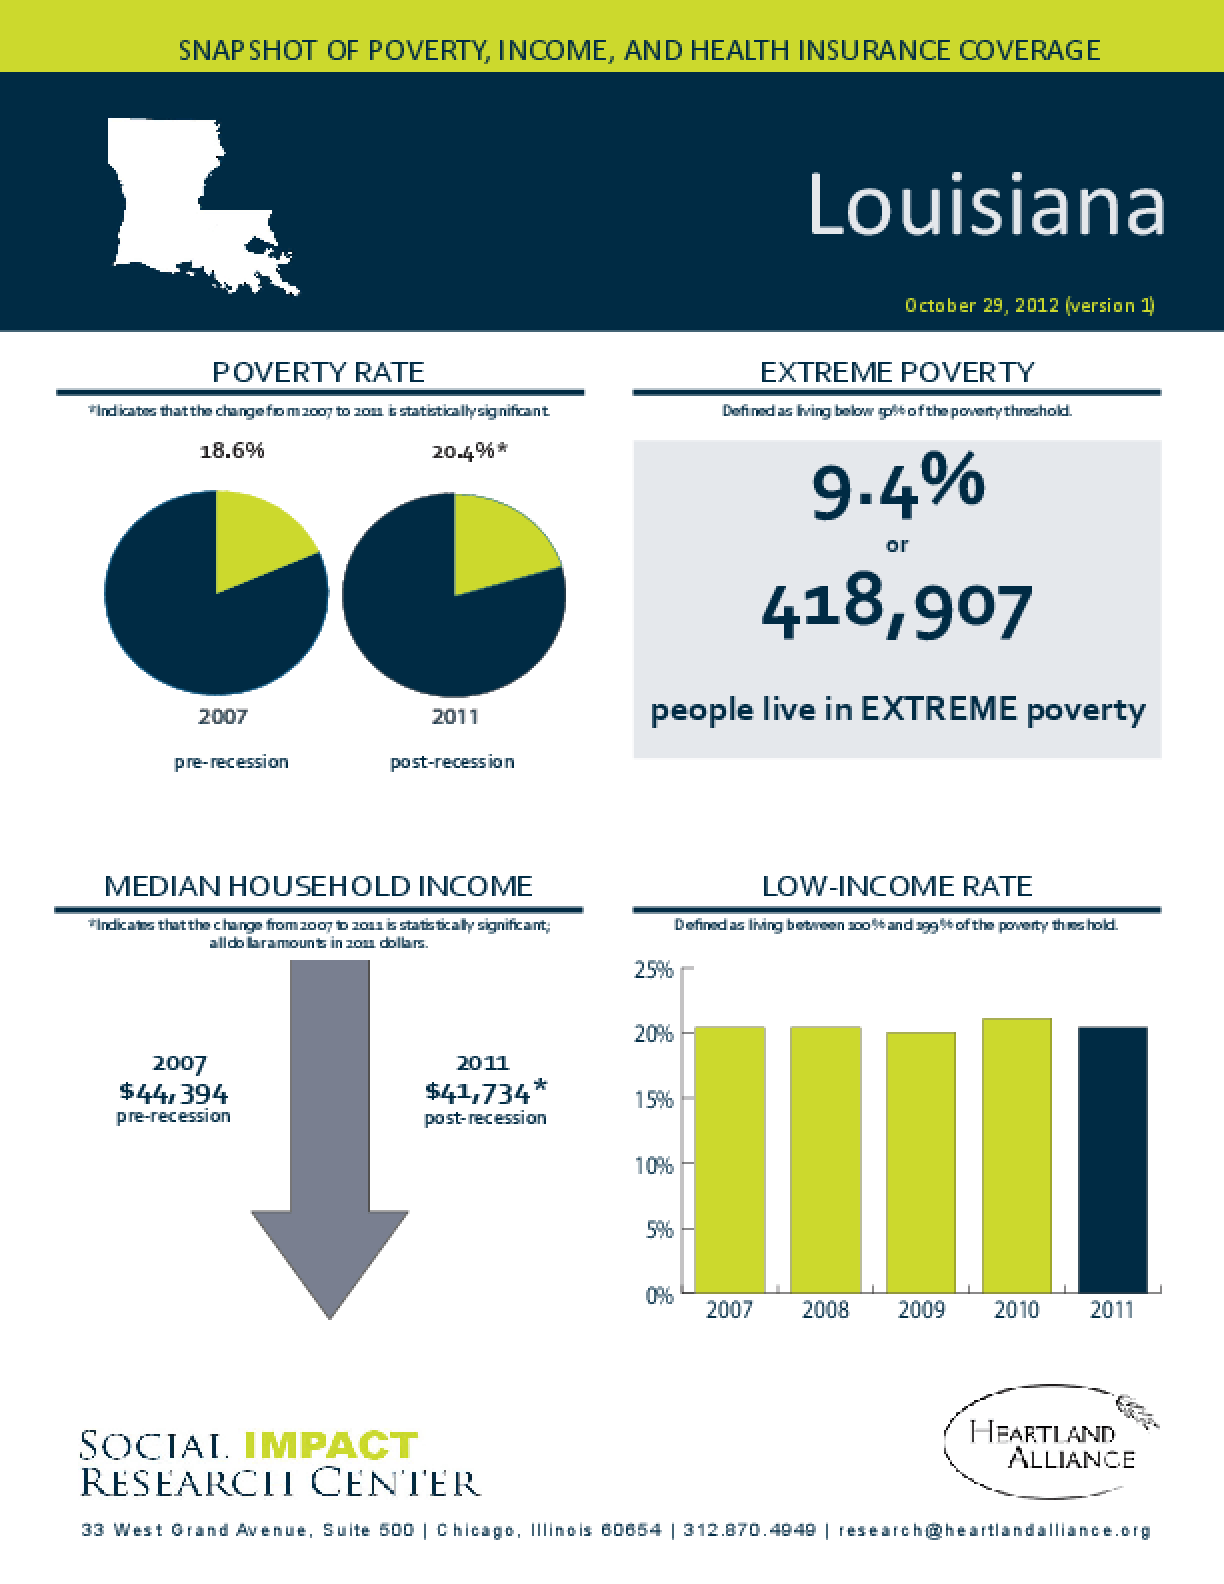 Louisiana: Snapshot of Poverty, Income, and Health Insurance Coverage - 2011